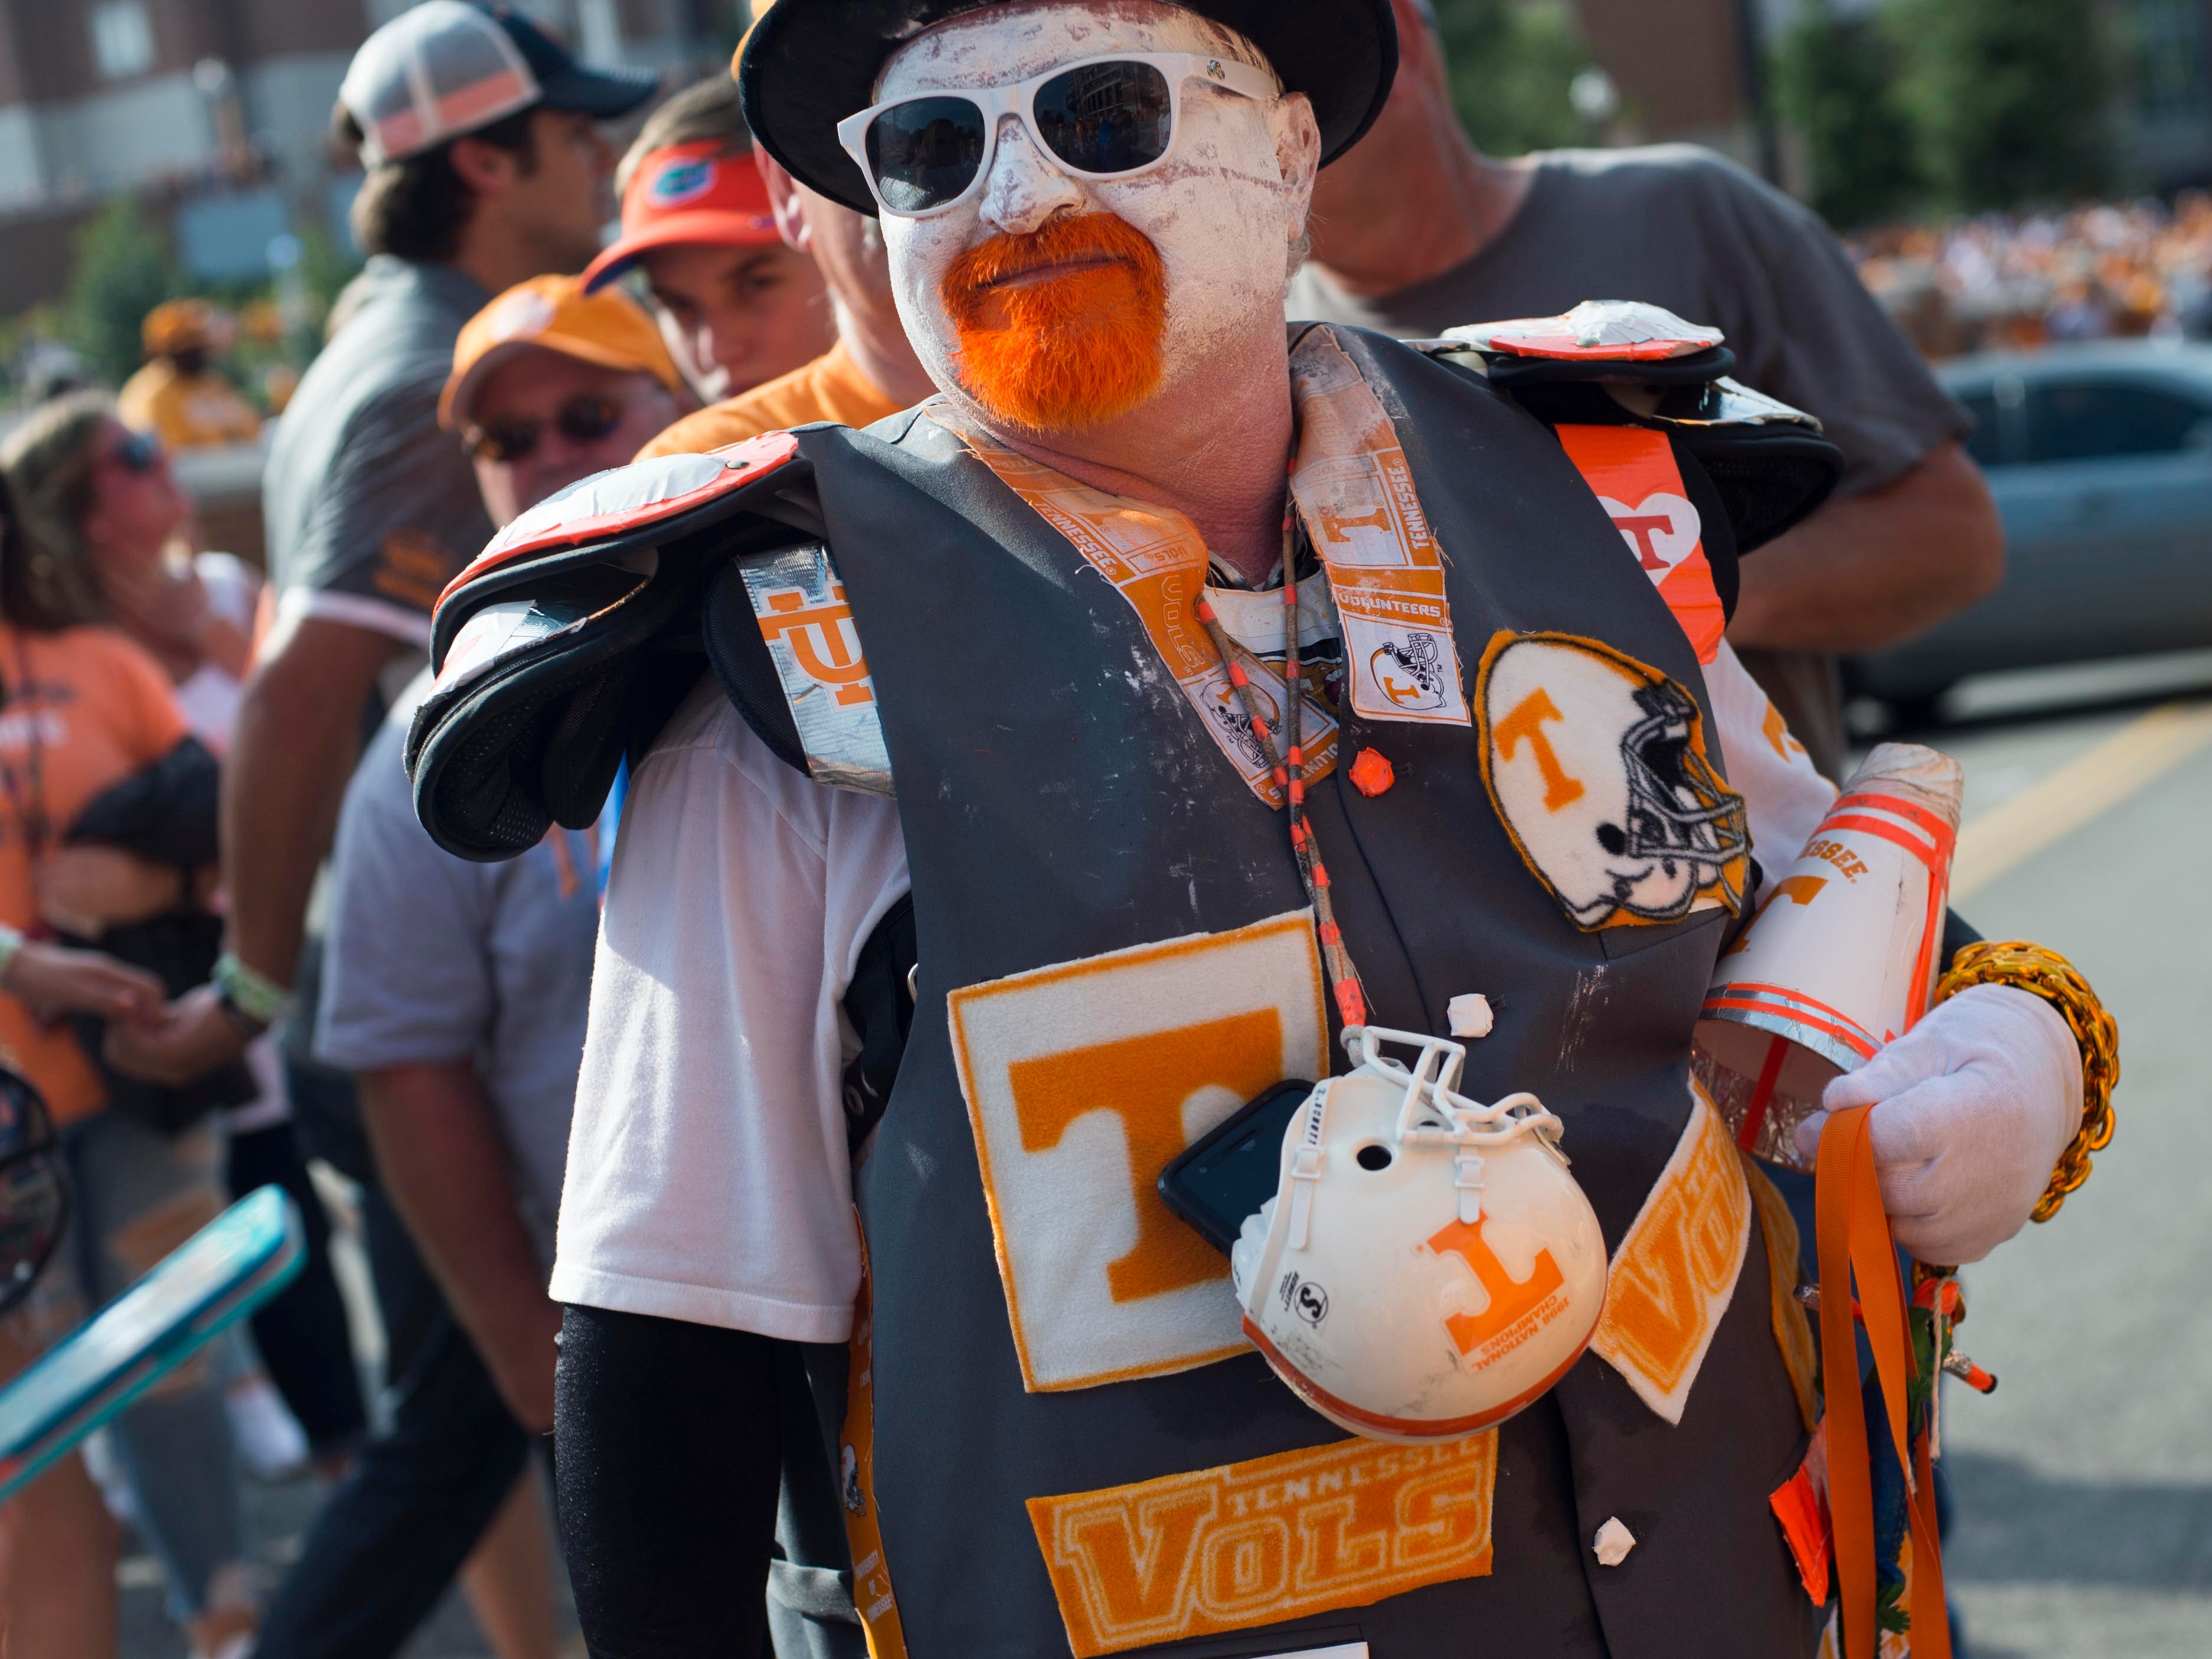 An avid Tennessee fan waits for the start of the game against Florida on Saturday, September 22, 2018.